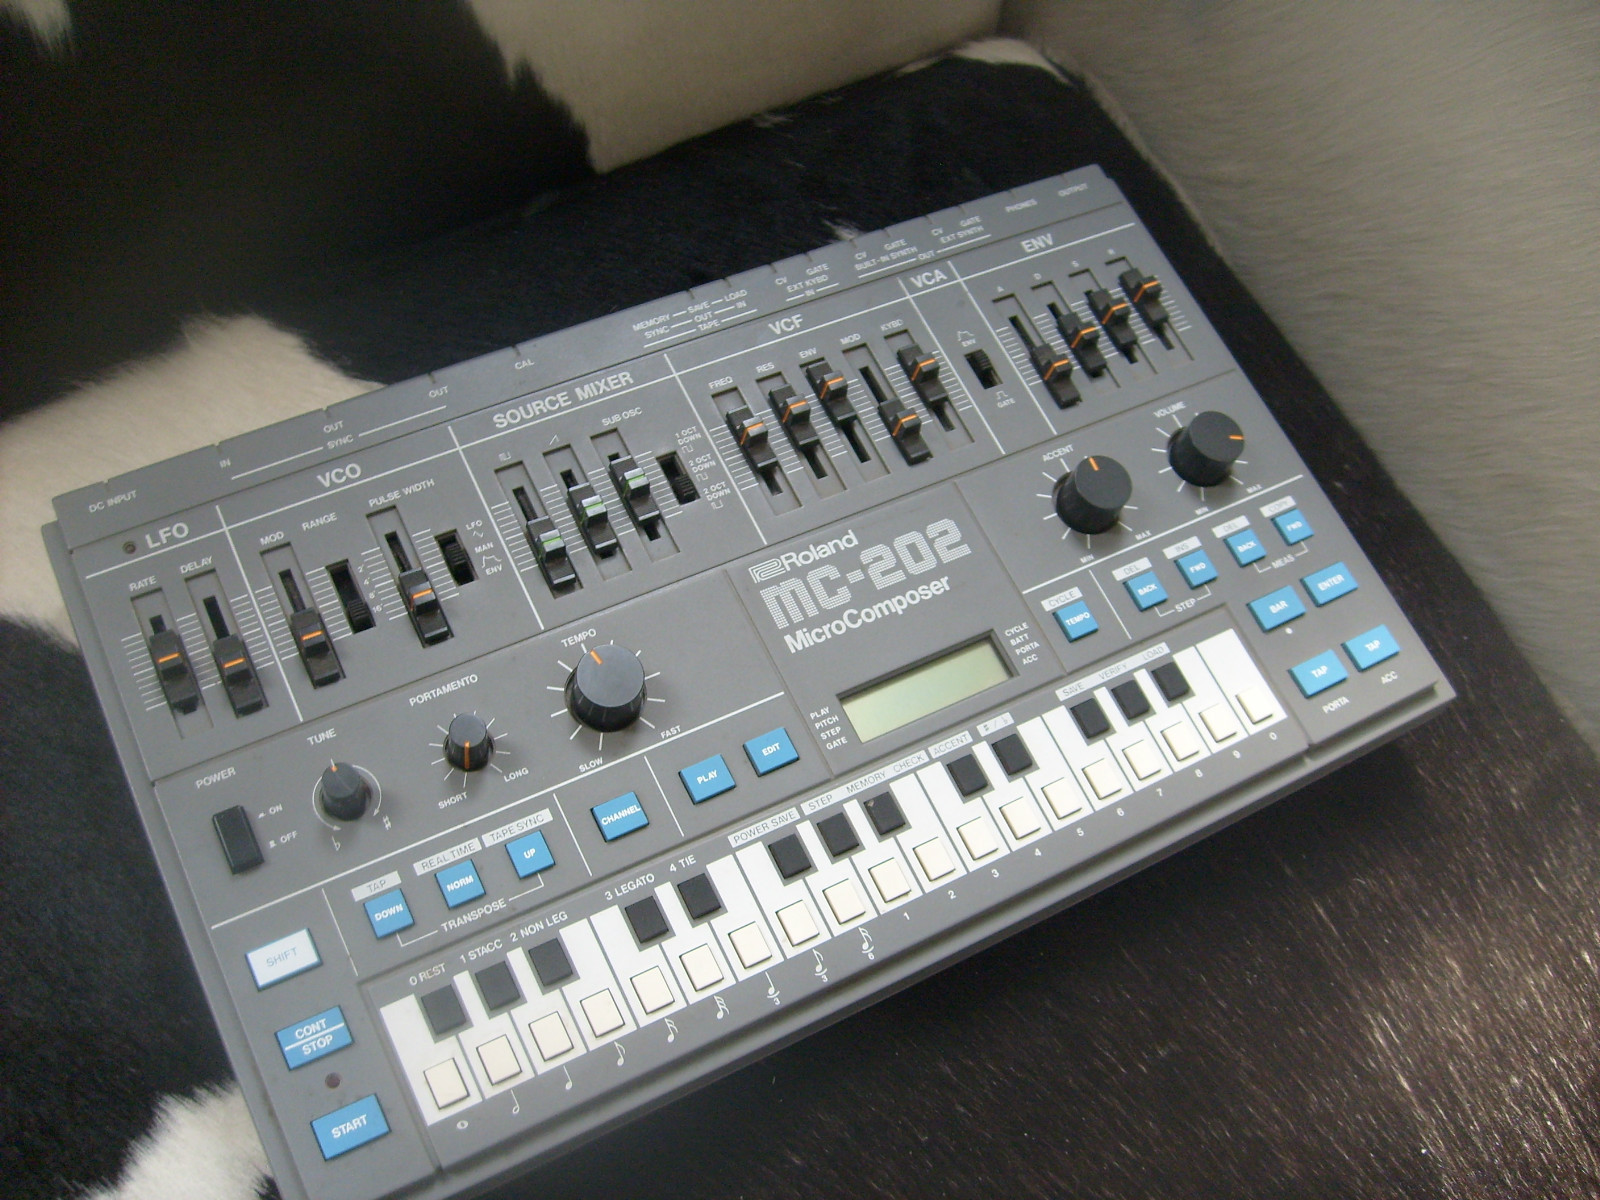 Roland mc-50 mkii micro composer setup 2 units, power | reverb.